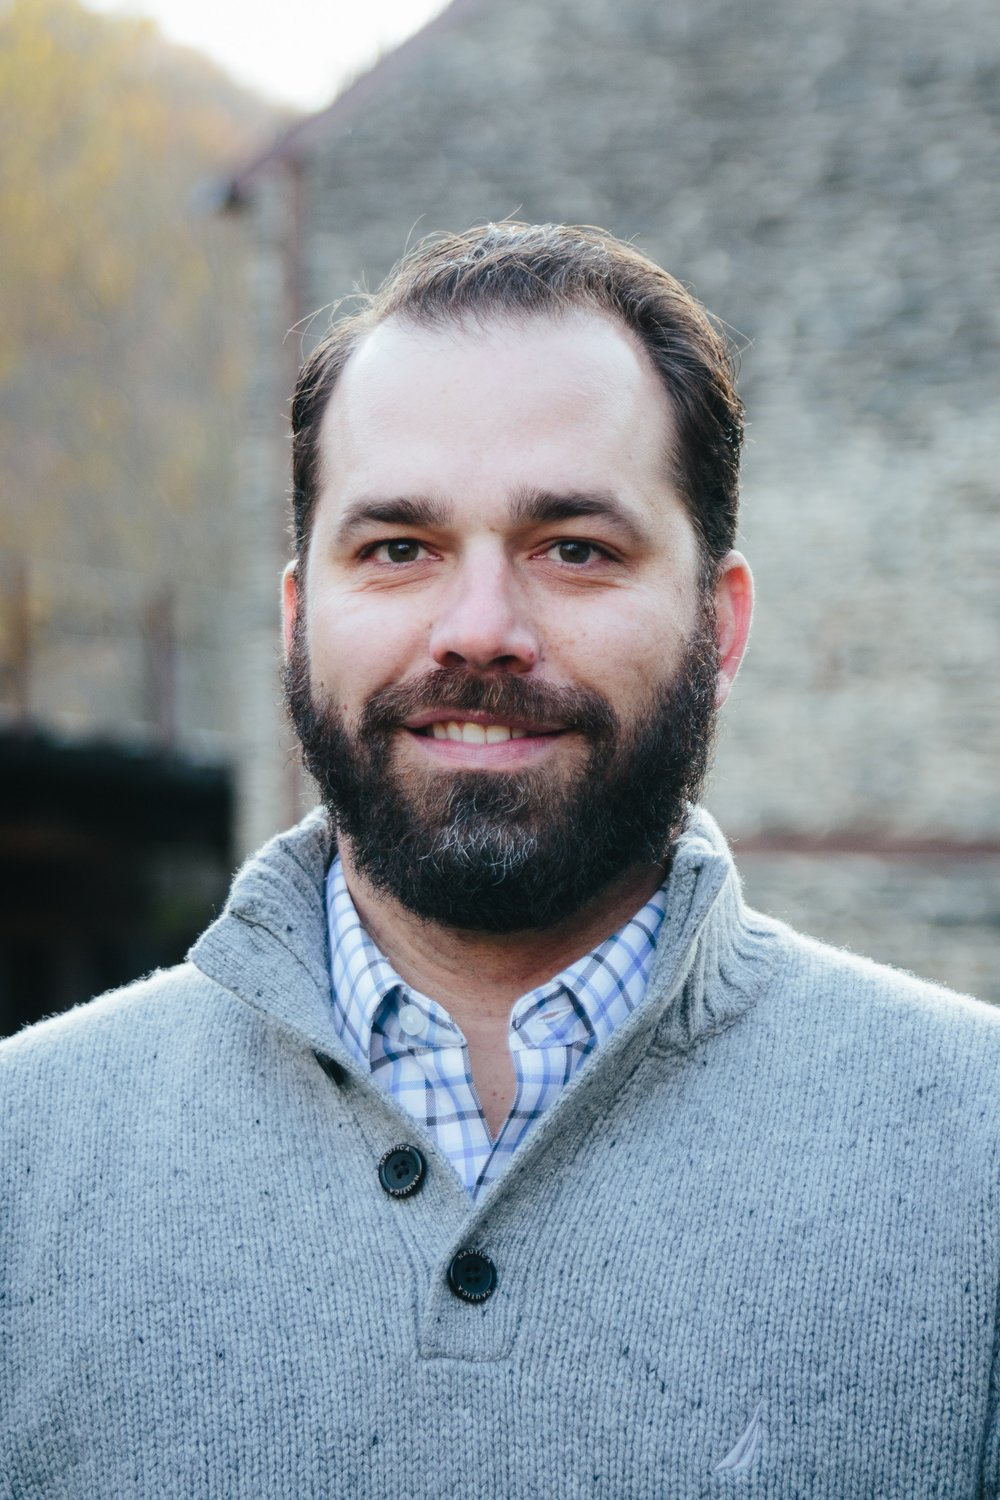 ADAM WRIGHT - Director of Business DevelopmentPrinting For LessAdam Wright is the Director of Business Development at PFL, in Livingston, Montana. He has been a member of the AMA Advisory Board since March 2018. Bridging the gap between sales and marketing has been Adam's forte and interest for over a decade. He has worked in both roles, owned his own business and worked at every stage of the sales process to create happy customers. He enjoys sharing his sales knowledge and skills, when he's not snowboarding or fishing.